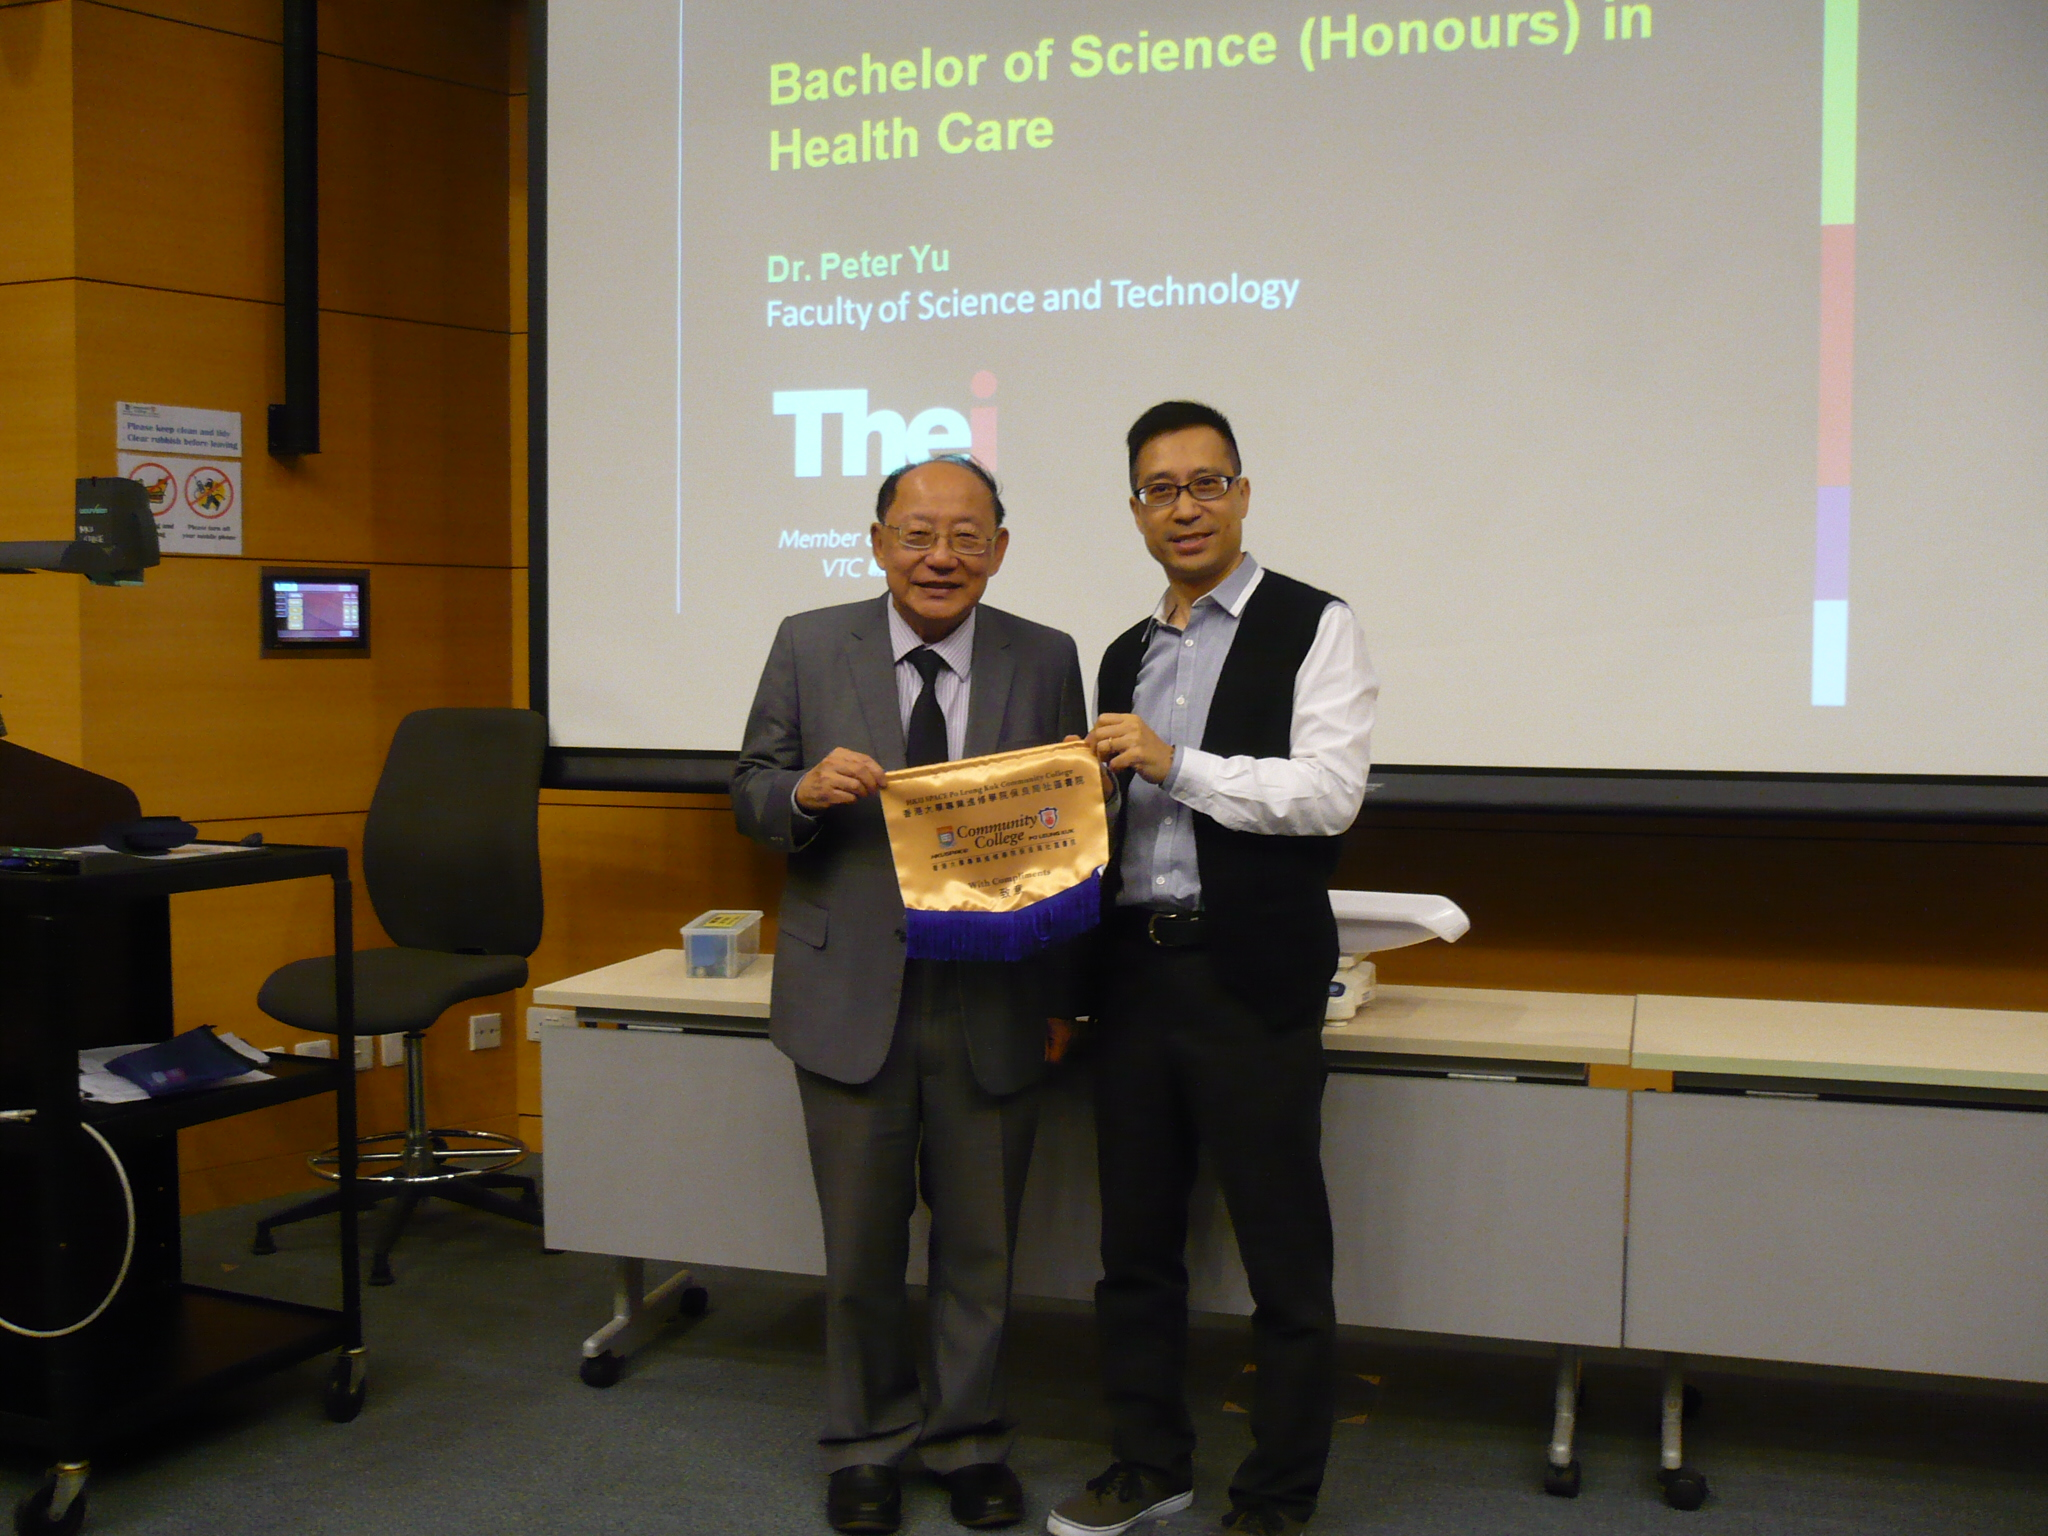 Seminar on the BSc in (Hons) in Health Care (Technological and Higher Education Institute of Hong Kong, THEi) - Photo - 1